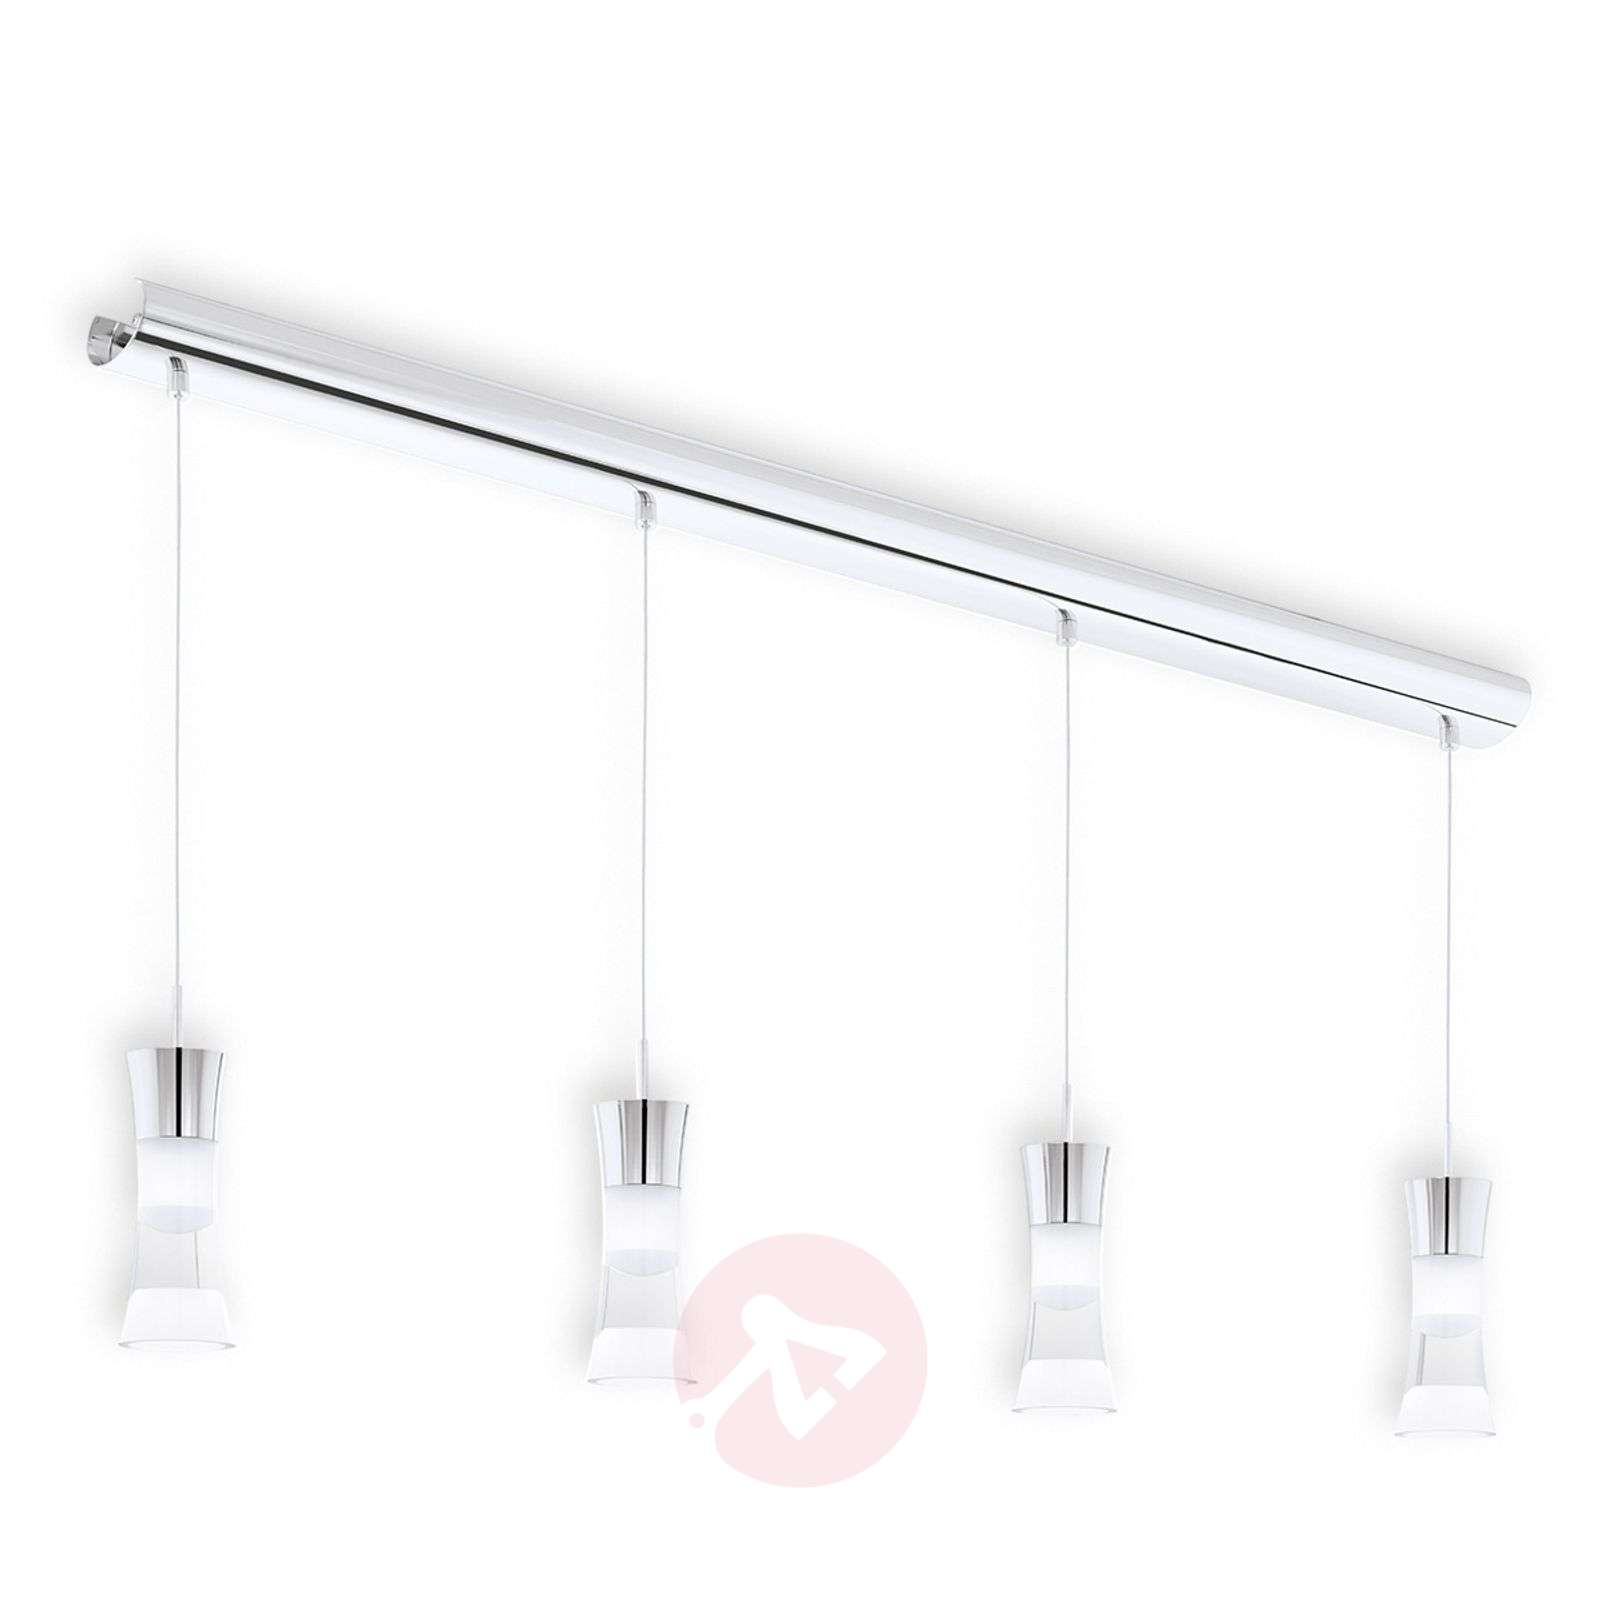 4 lichtbronnen LED hanglamp Pancento uit staal-3031743-01